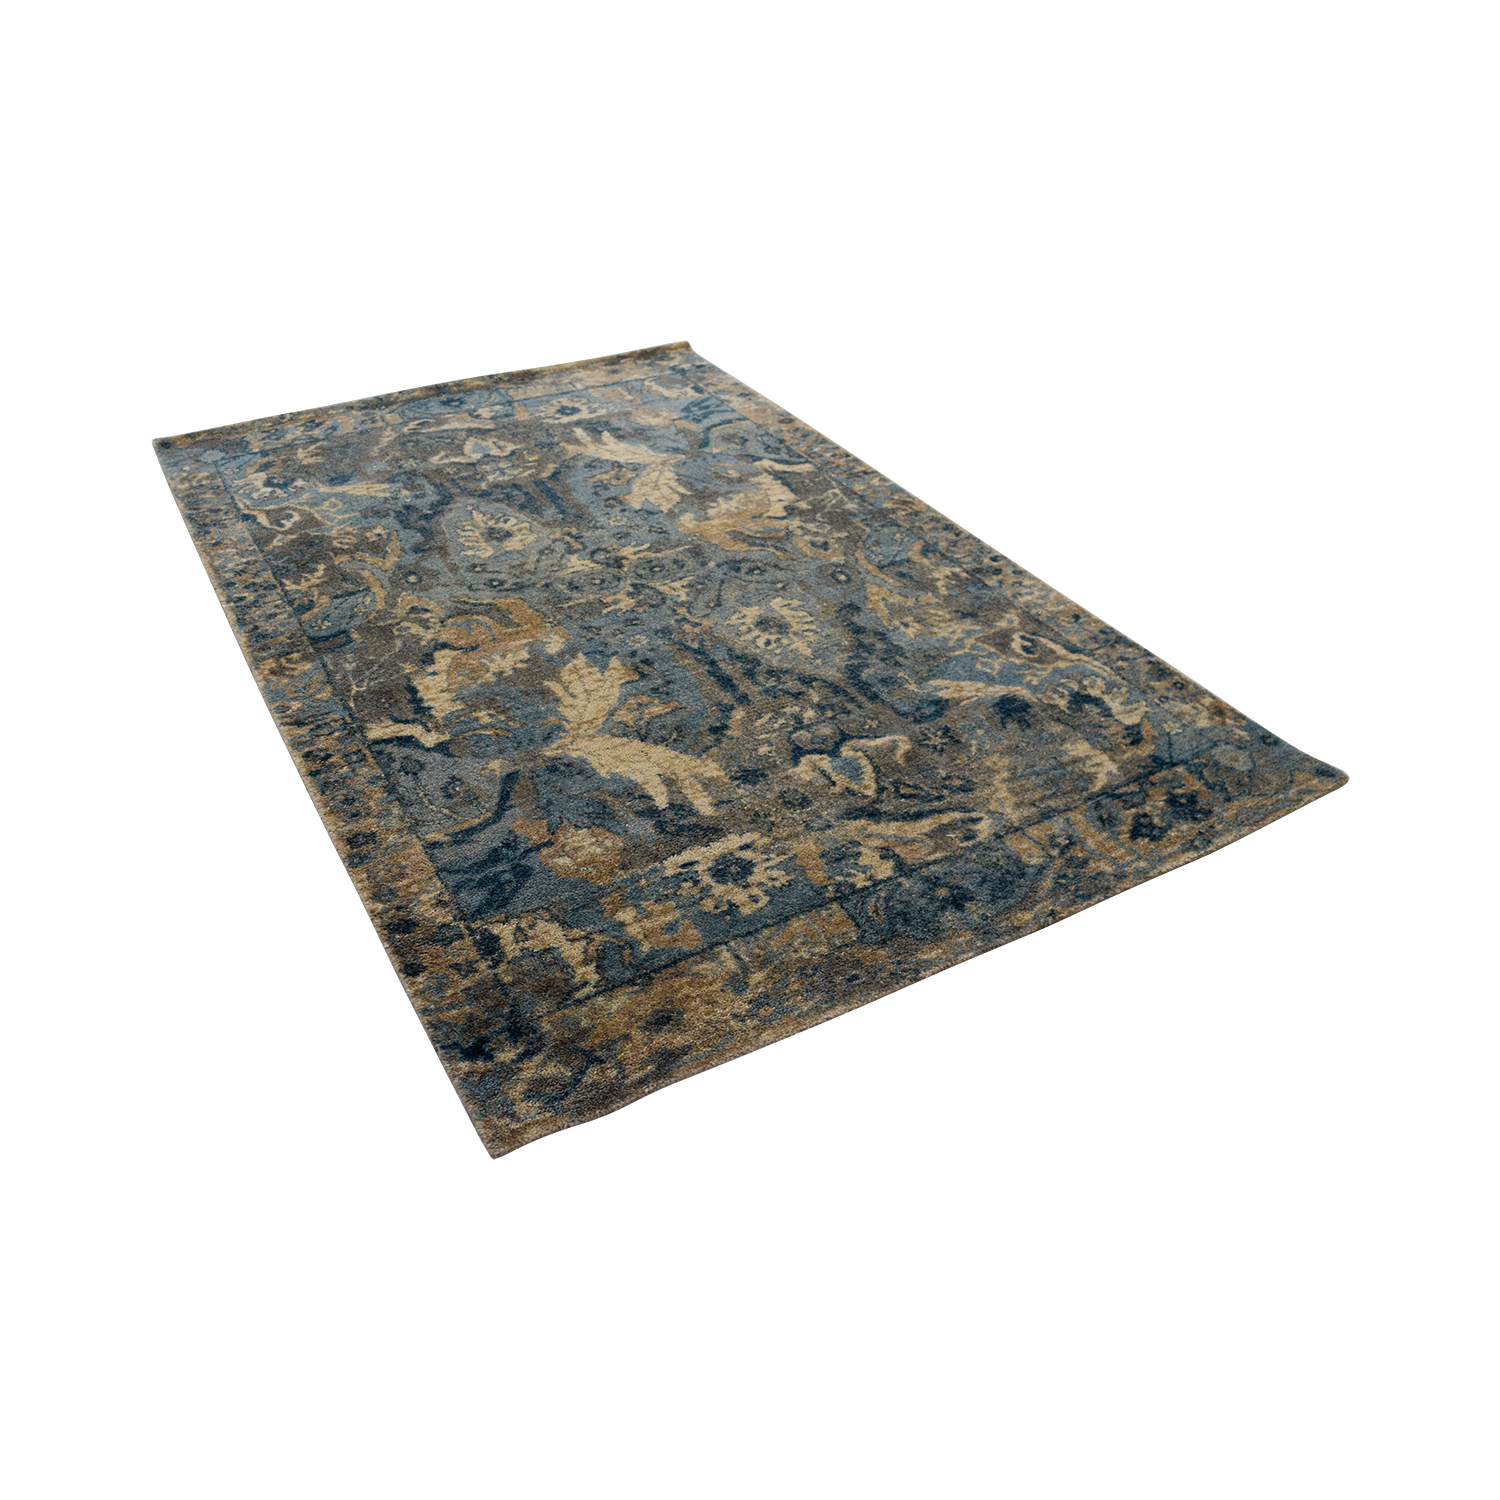 buy Obeetee Obeetee Blue Grey and Ivory Wool Rug online